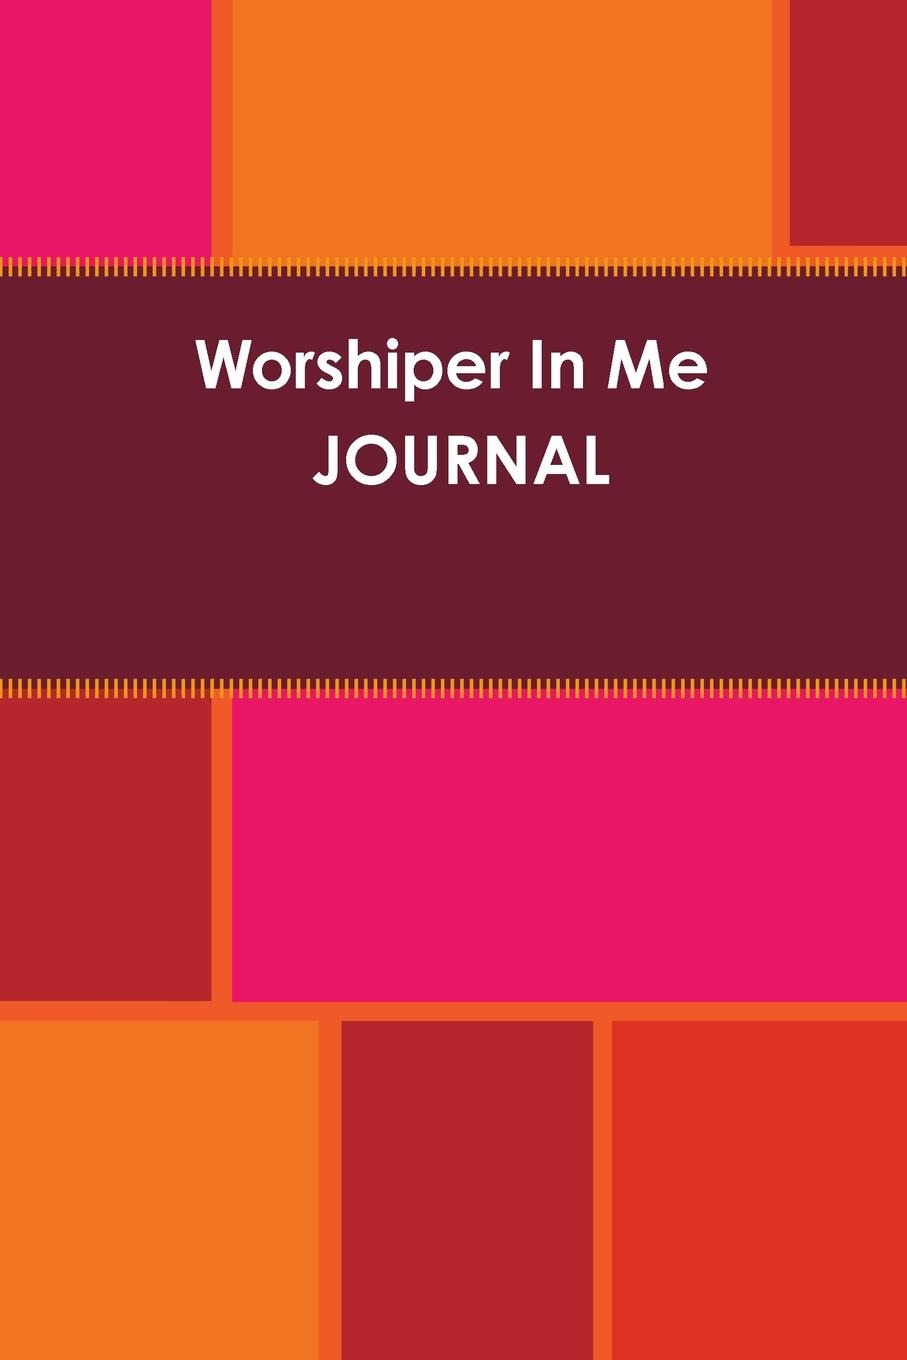 Tomecia Mahomes Worshiper In Me Journal still me